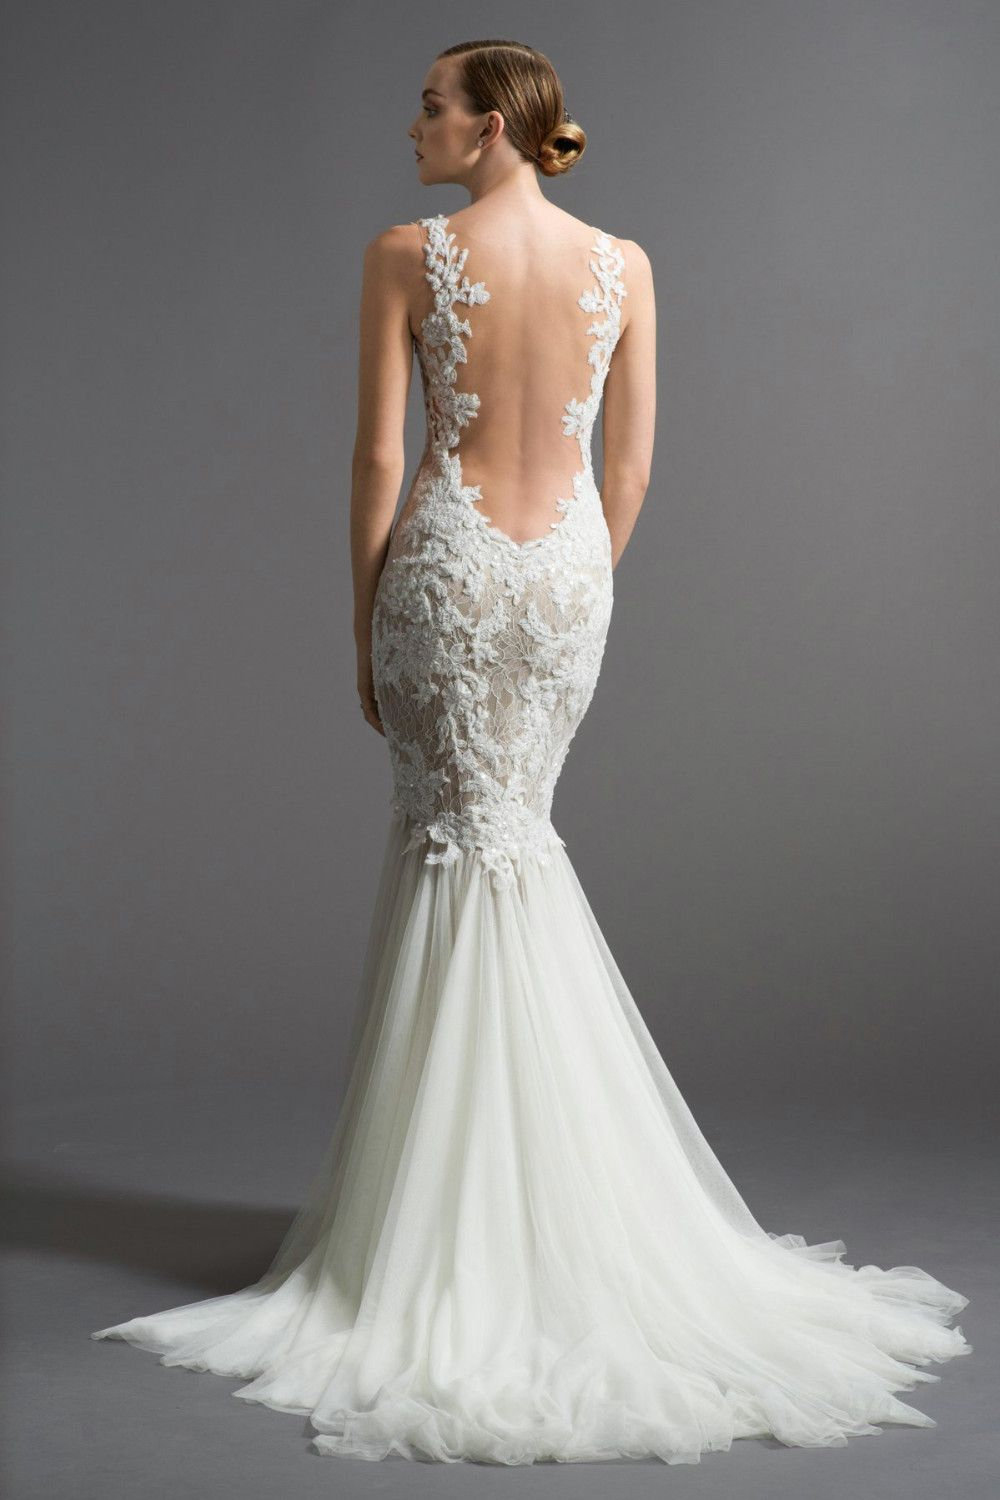 A White Wedding In Mermaid Dress Beautiful Back And Body Fit Have